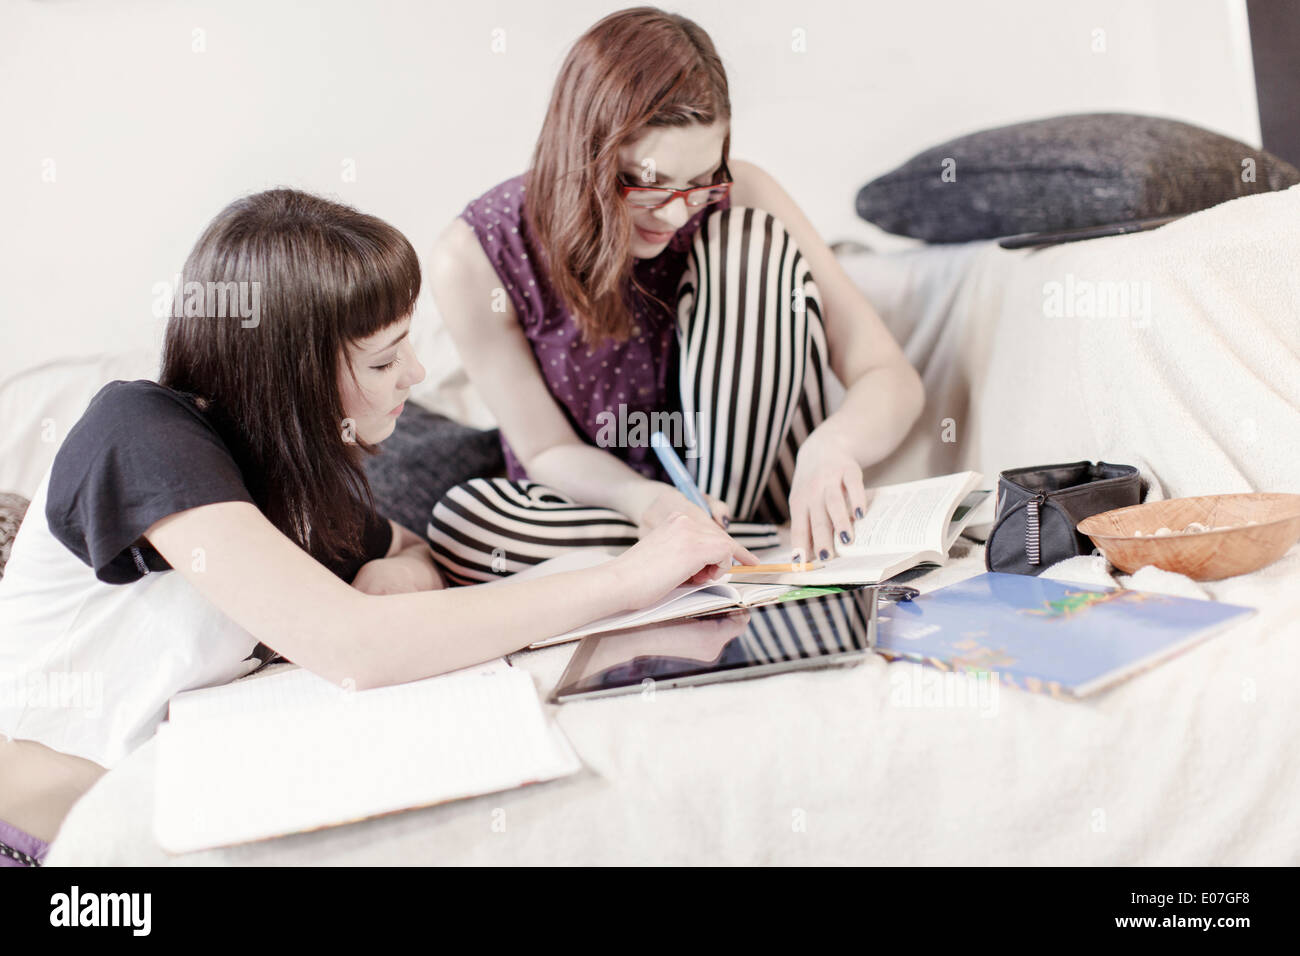 Two young women learning together with books and digital tablet - Stock Image